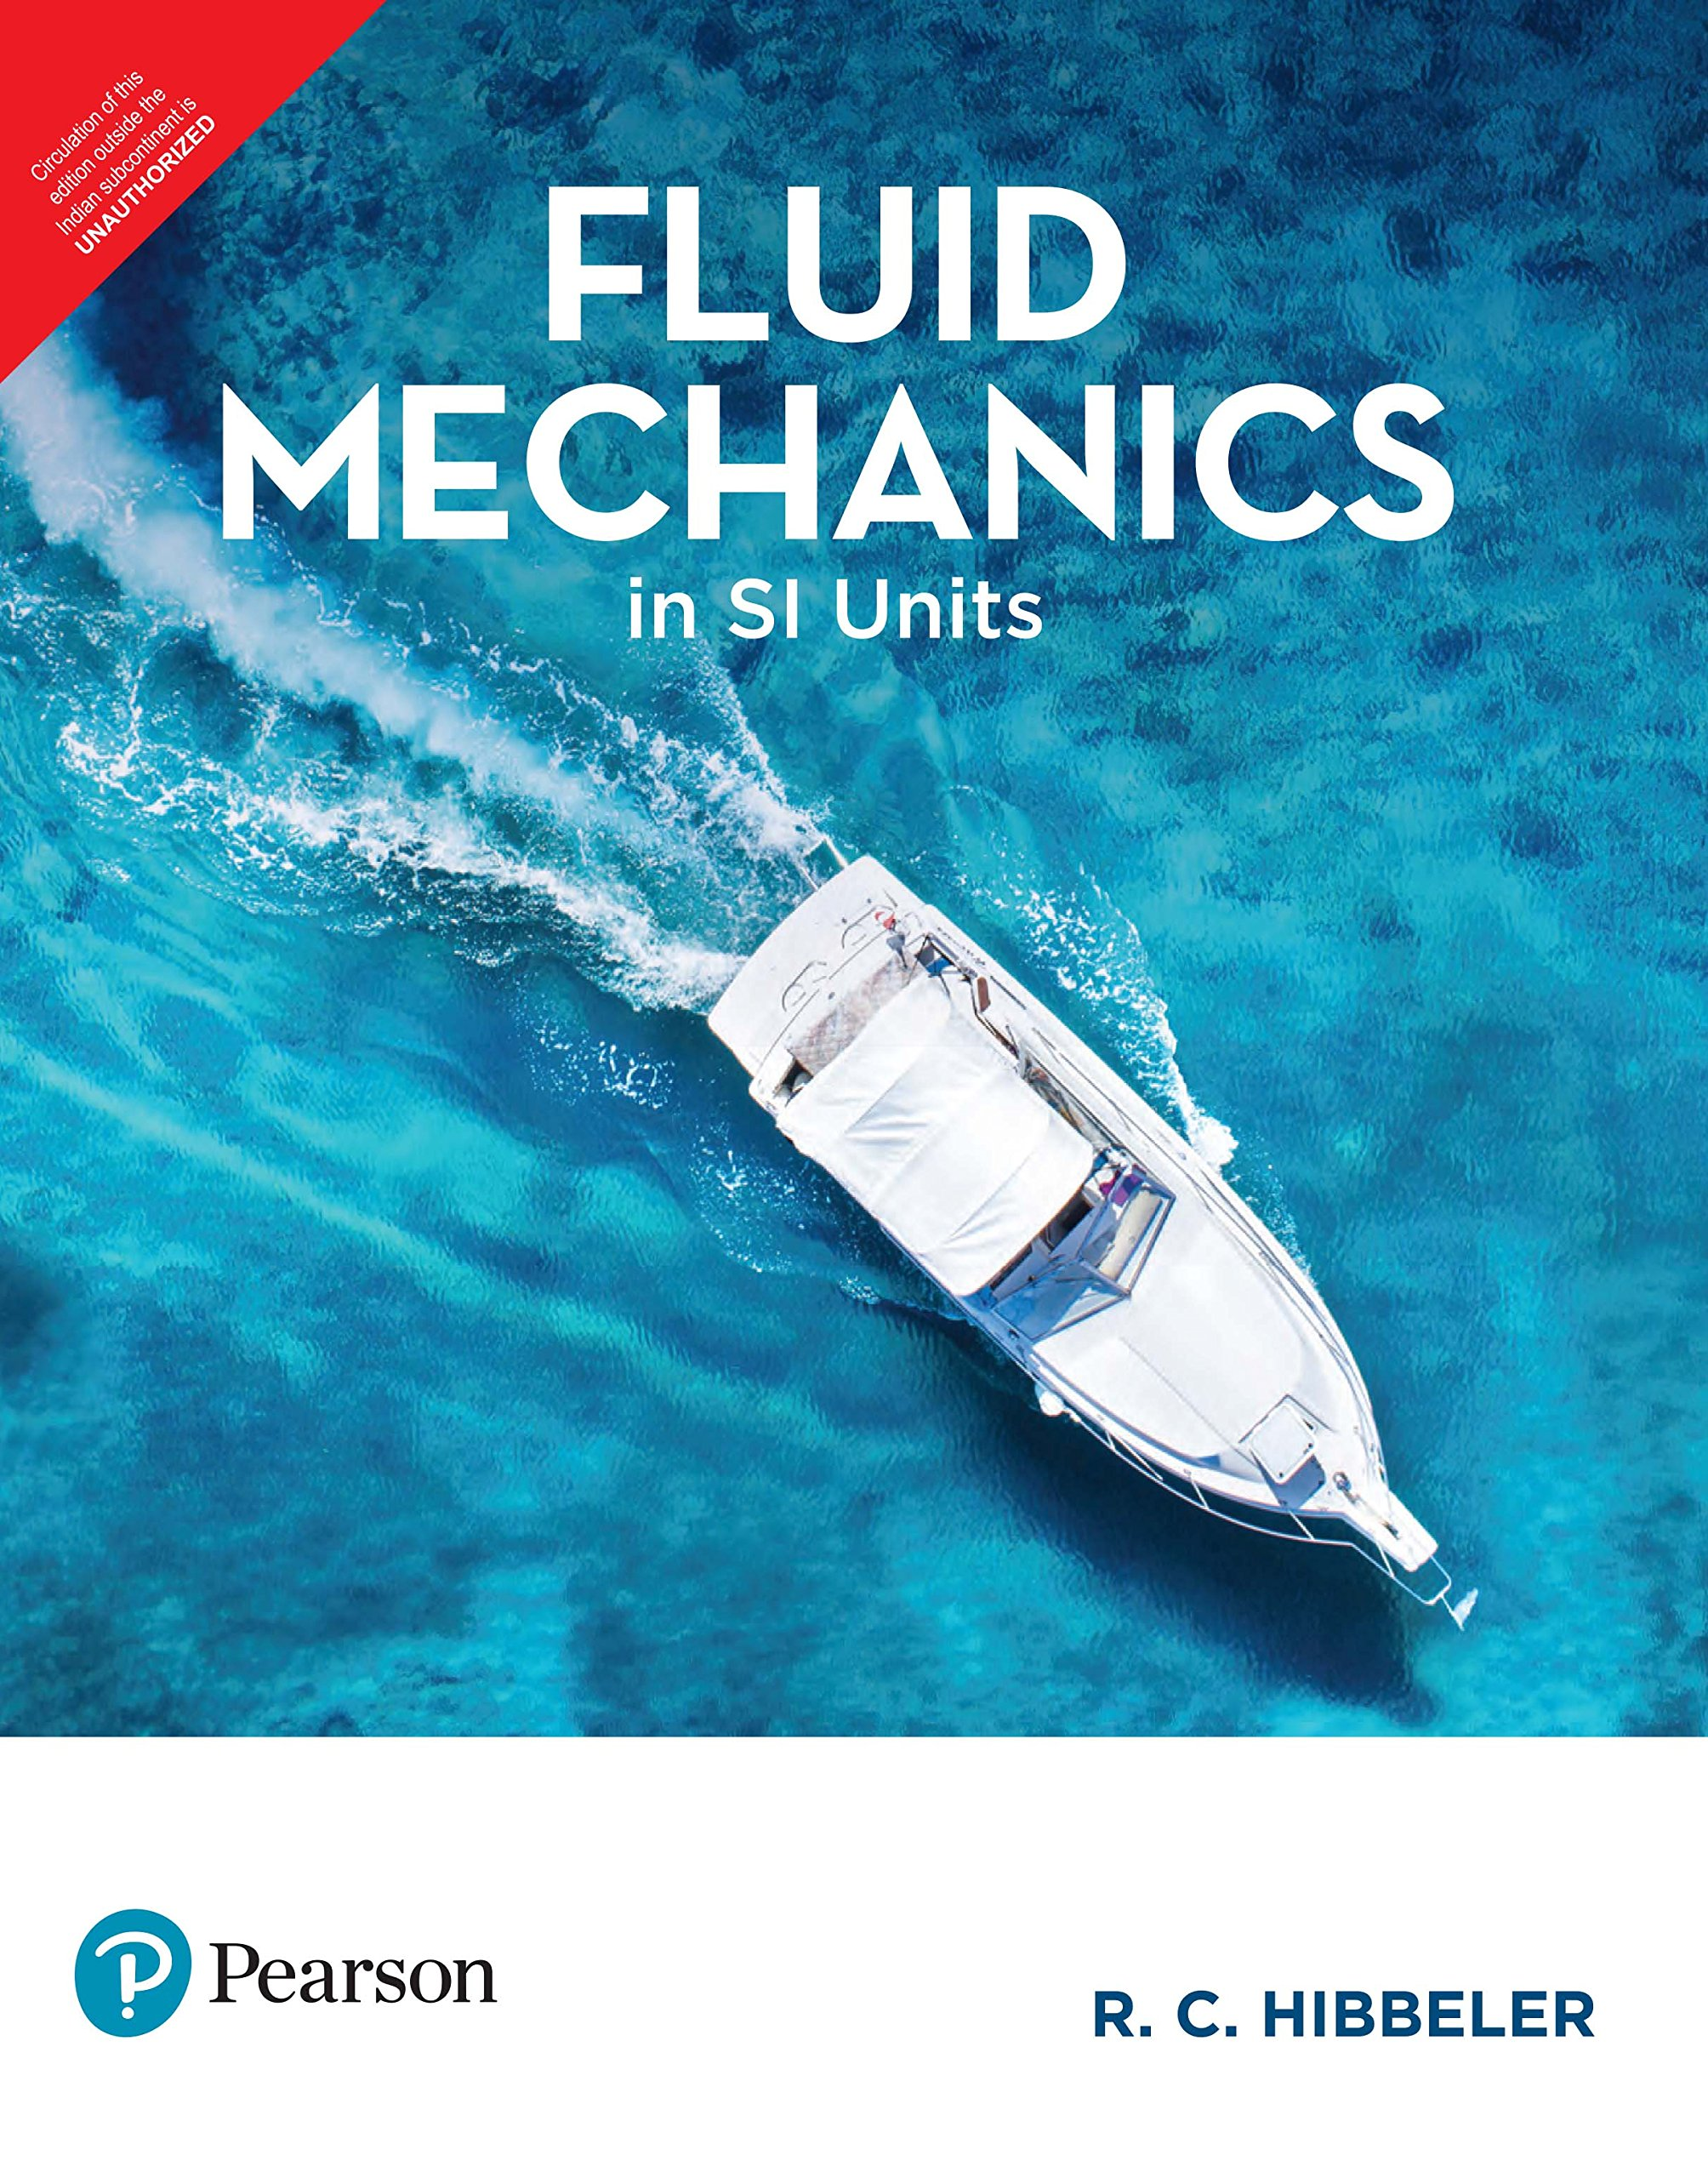 Buy Fluid Mechanics in SI Units Book Online at Low Prices in India | Fluid  Mechanics in SI Units Reviews & Ratings - Amazon.in